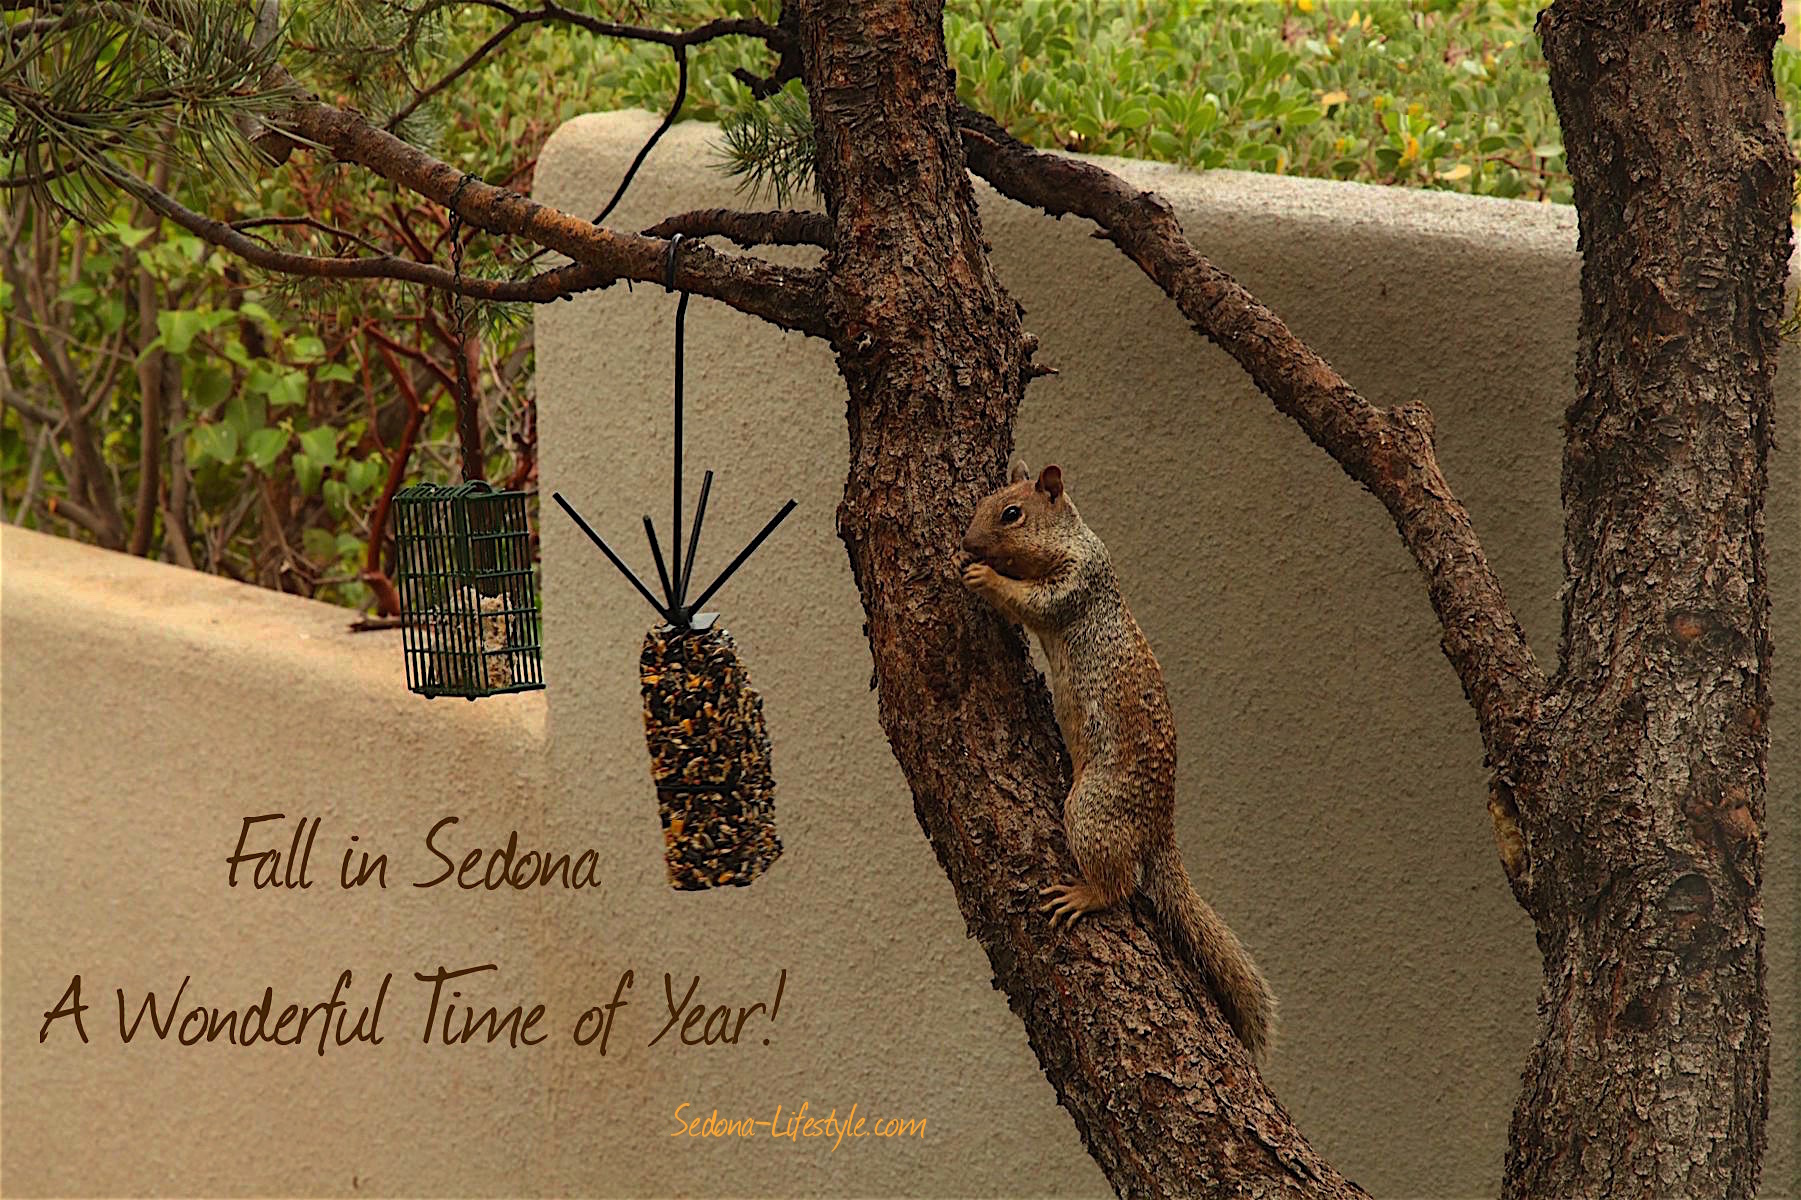 Sedona Fall squirrel and seeds climbing a tree